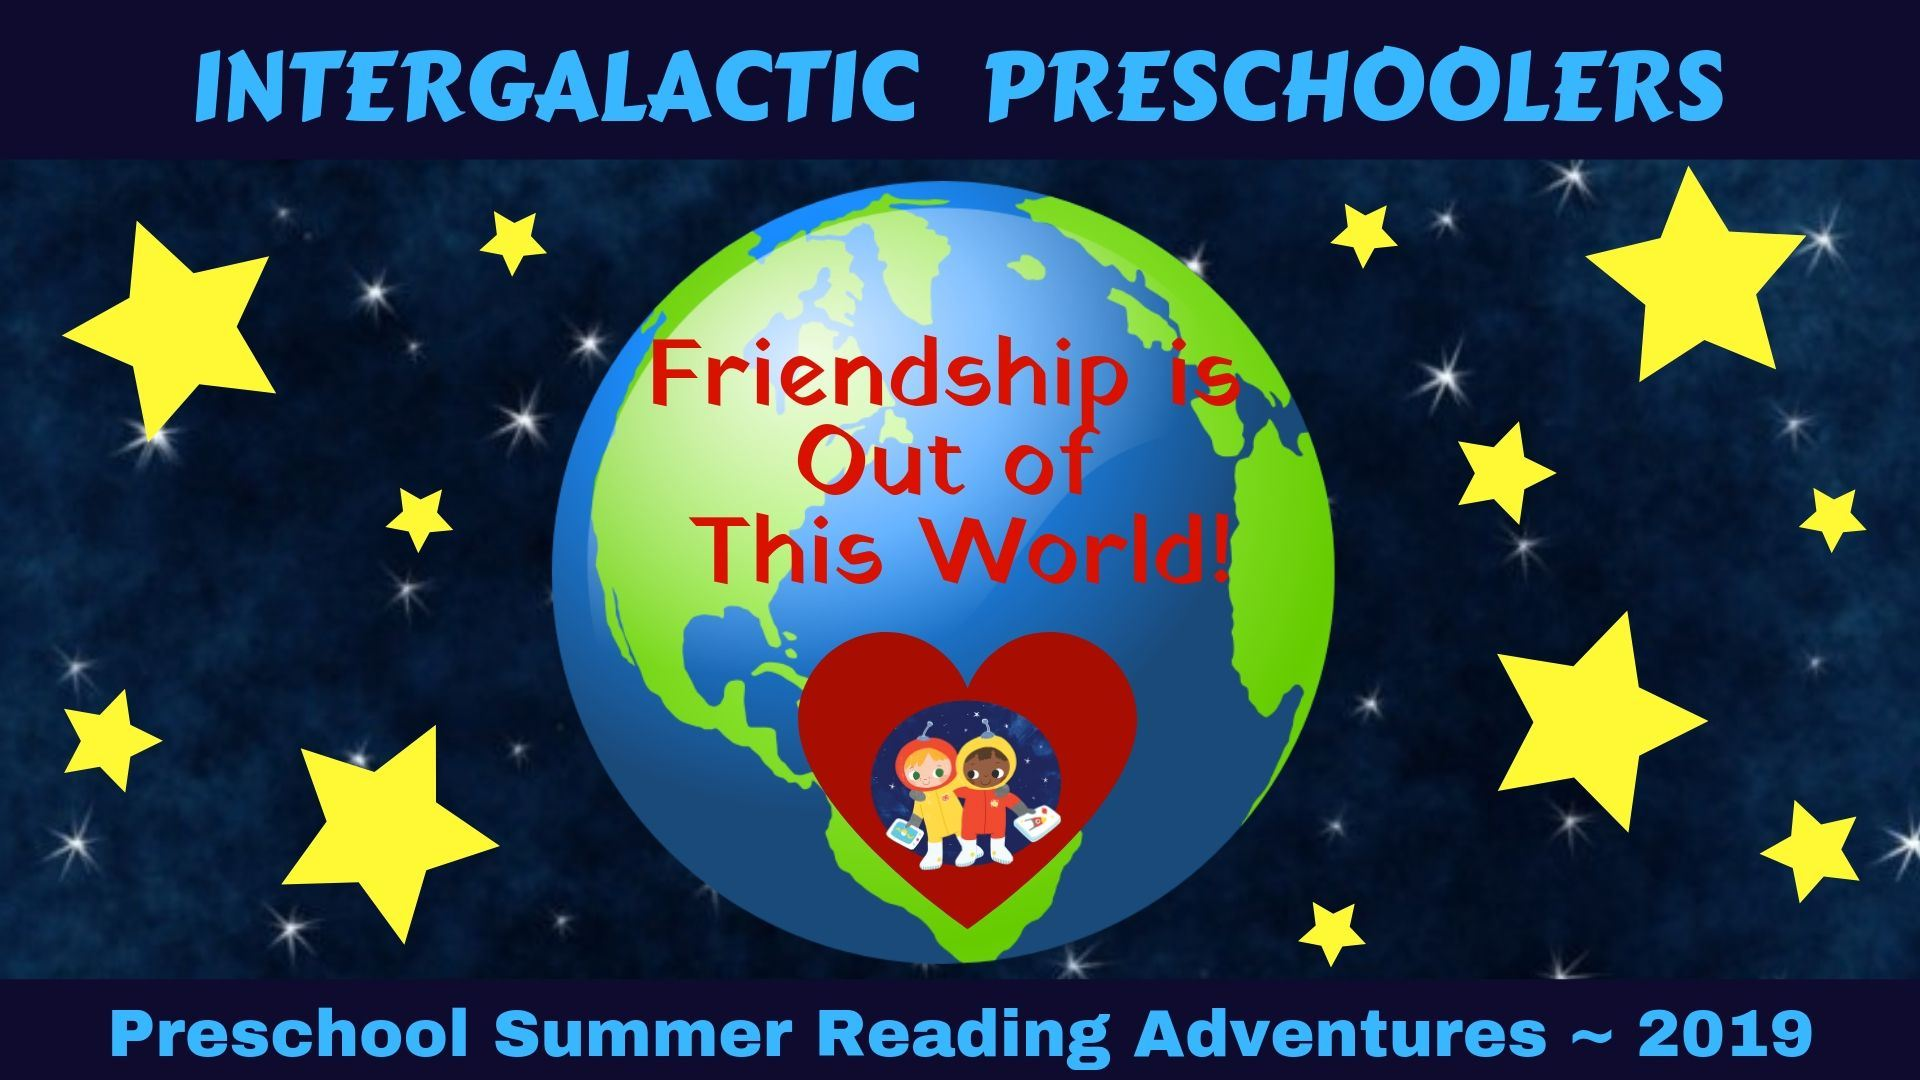 Intergalectic Preschoolers Friendship is out of this world Preschool Reading Adventures 2019